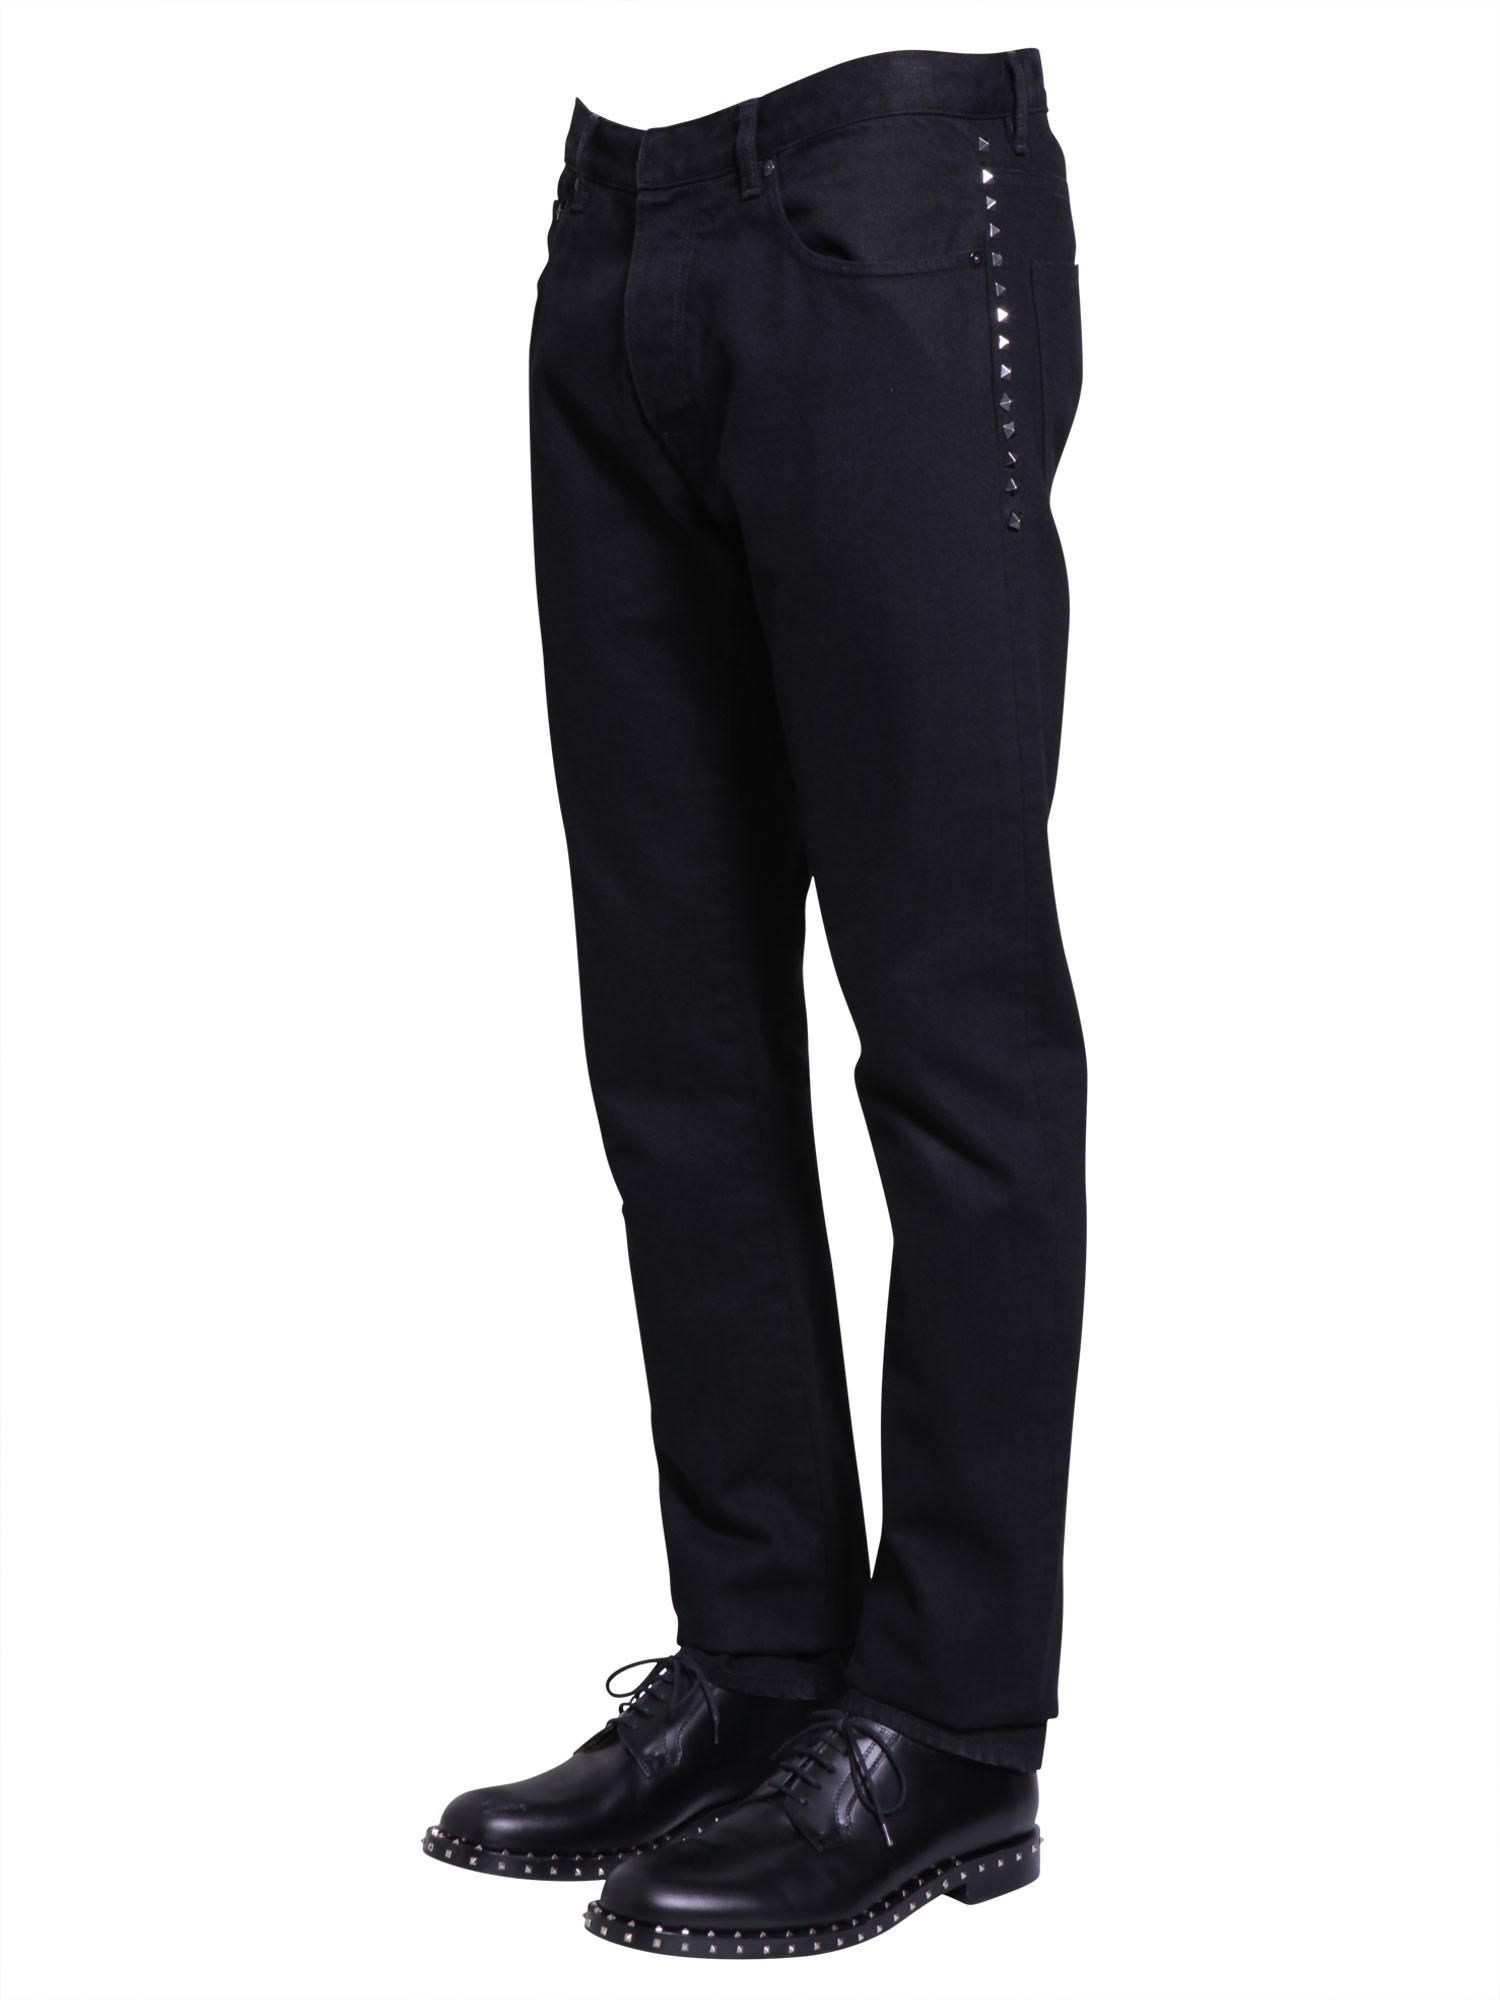 Chinos black Valentino Buy Cheap Cheap Looking For Marketable Sale Online Clearance Wide Range Of From China Free Shipping ajQOrftd